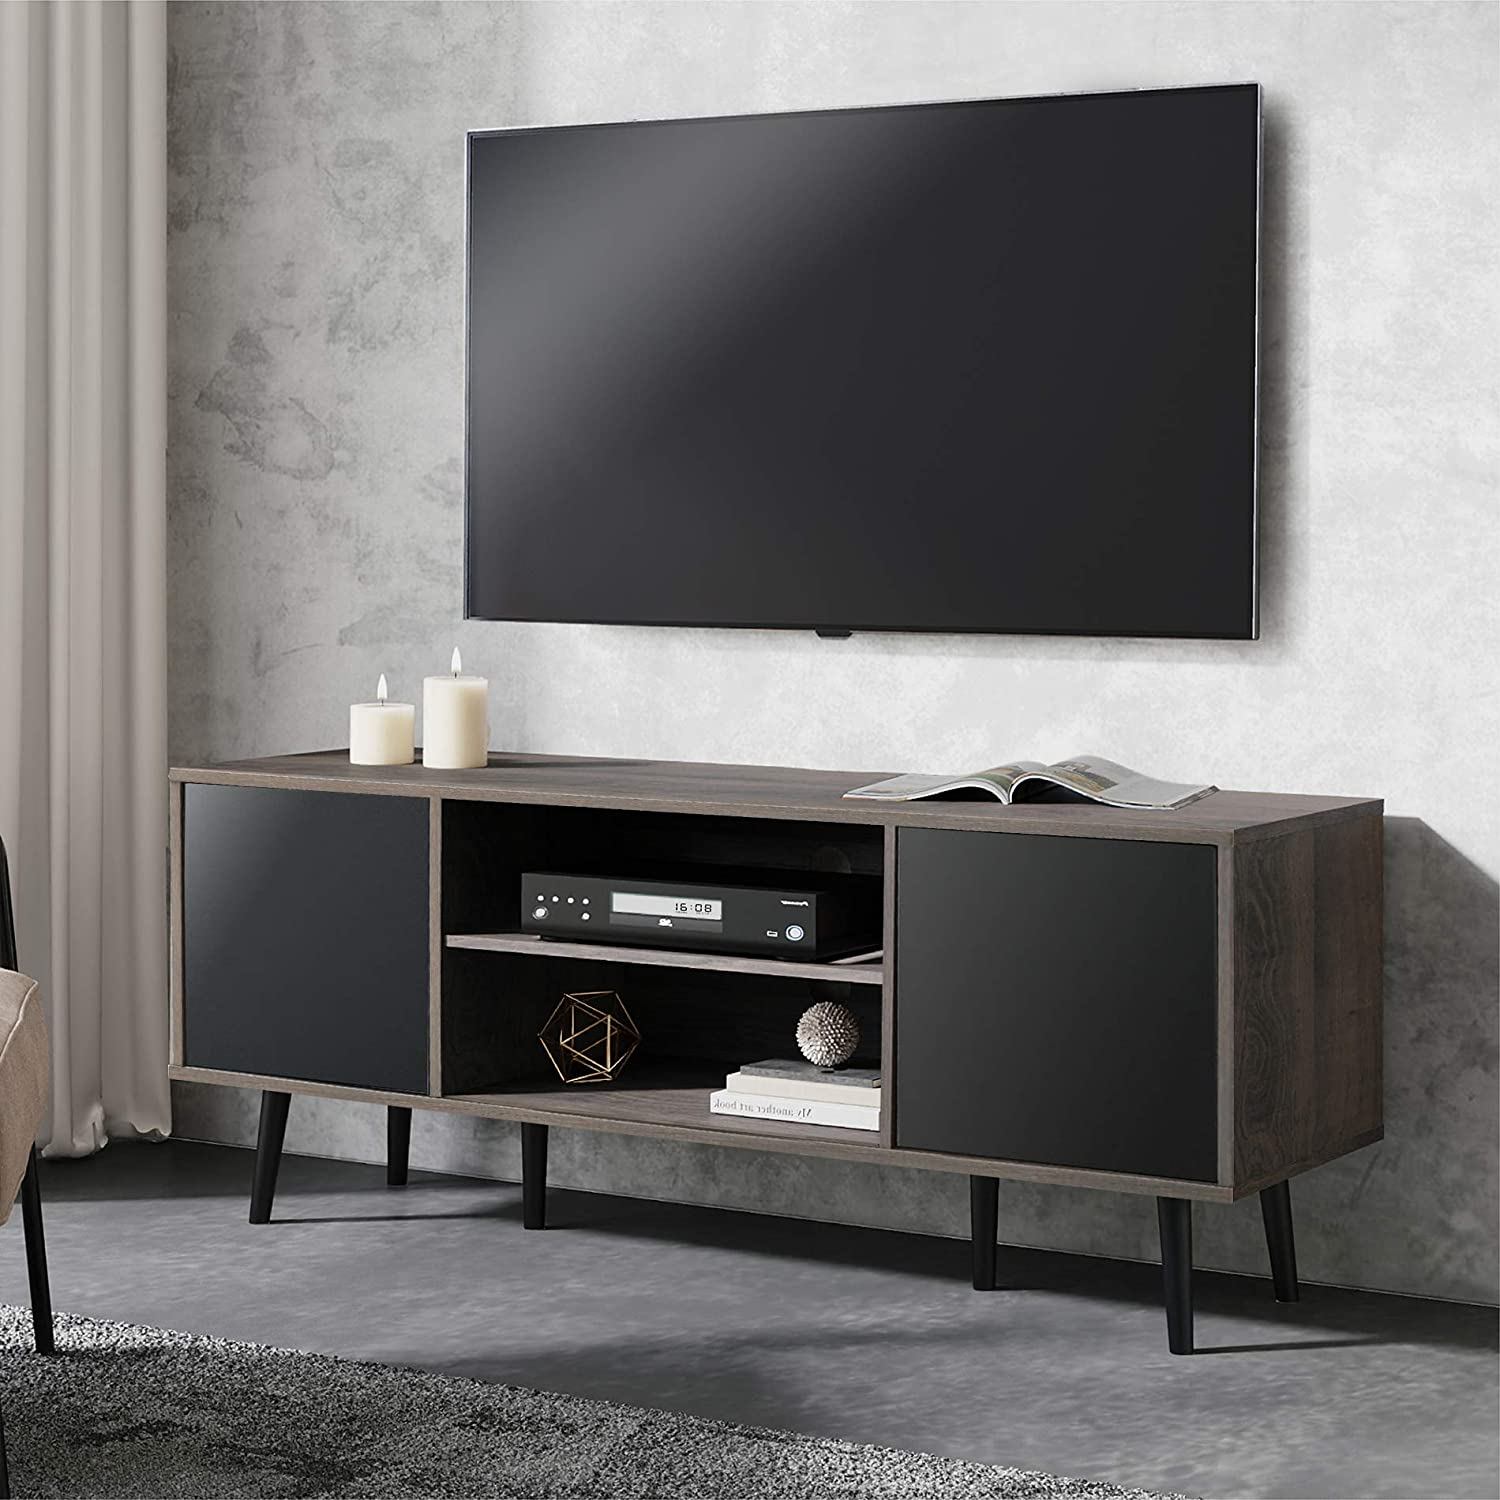 WAMPAT Mid-Century Modern TV Stand for up inch 65 TVs Max 68% OFF Our shop OFFers the best service Retro to